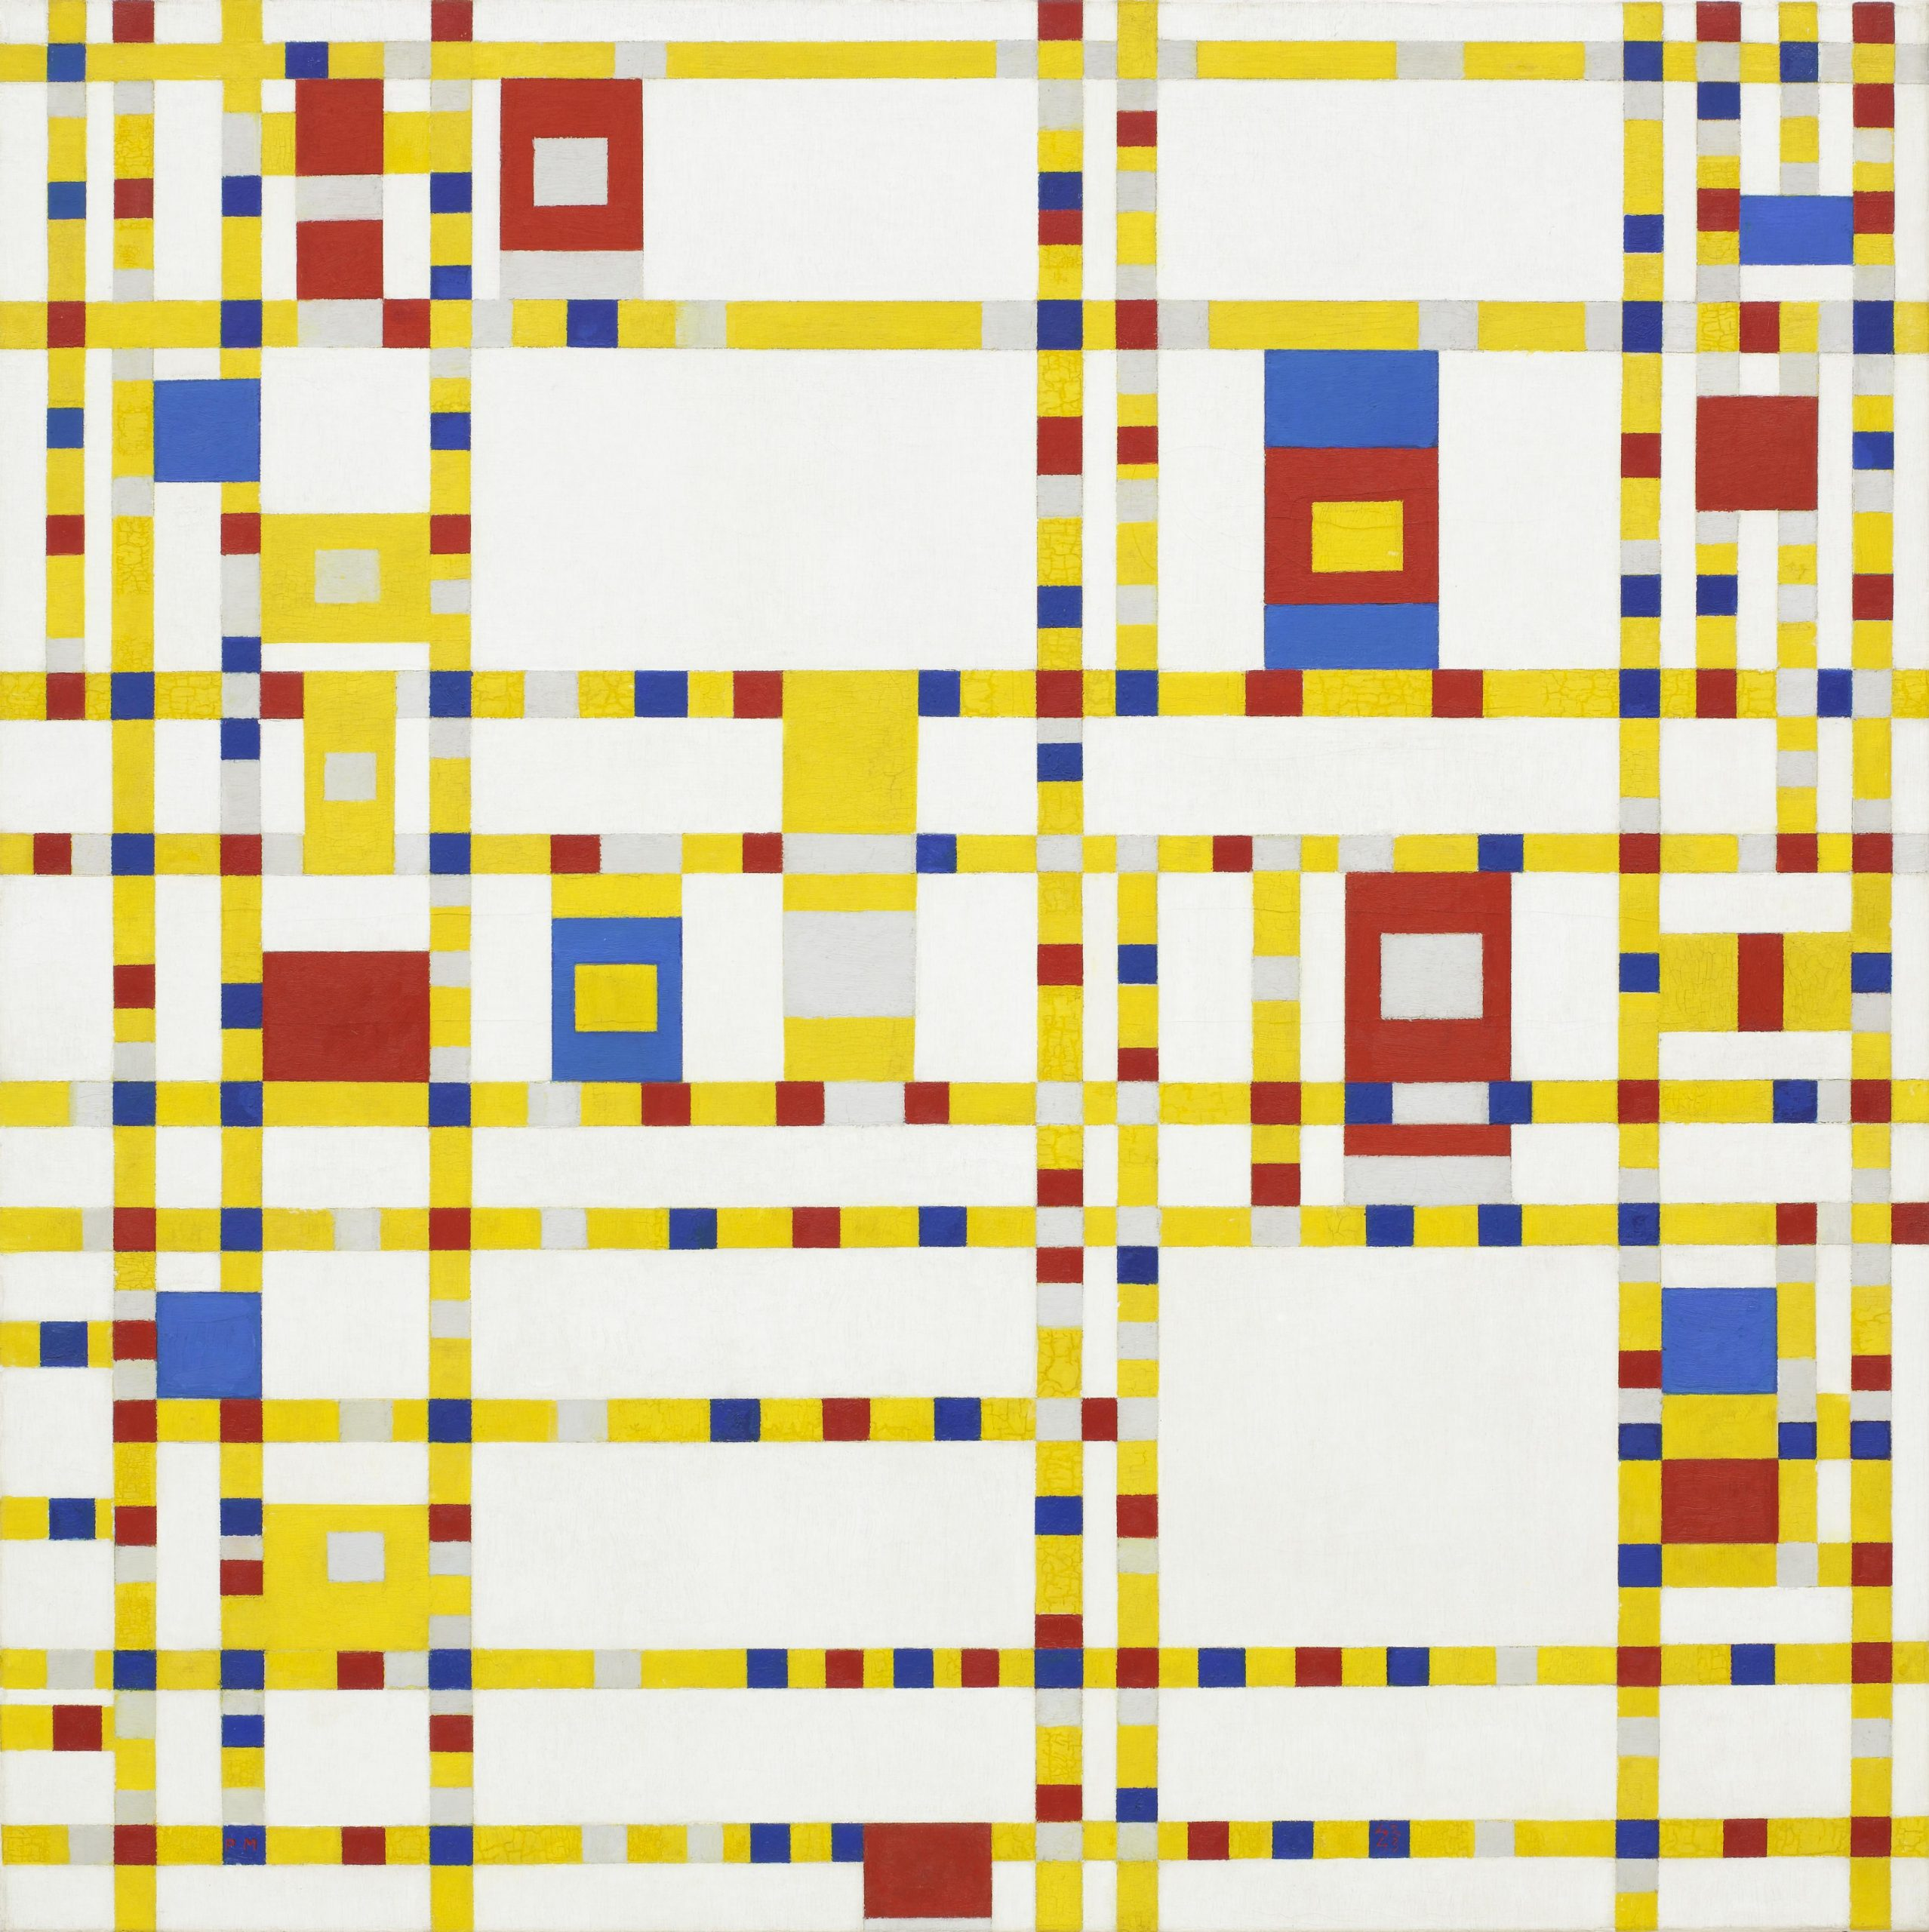 Broadway Boogie Woogie is a mathematical artistic work by Piet Mondrian that uses basic structures like the straight lines, and fundamental tones.